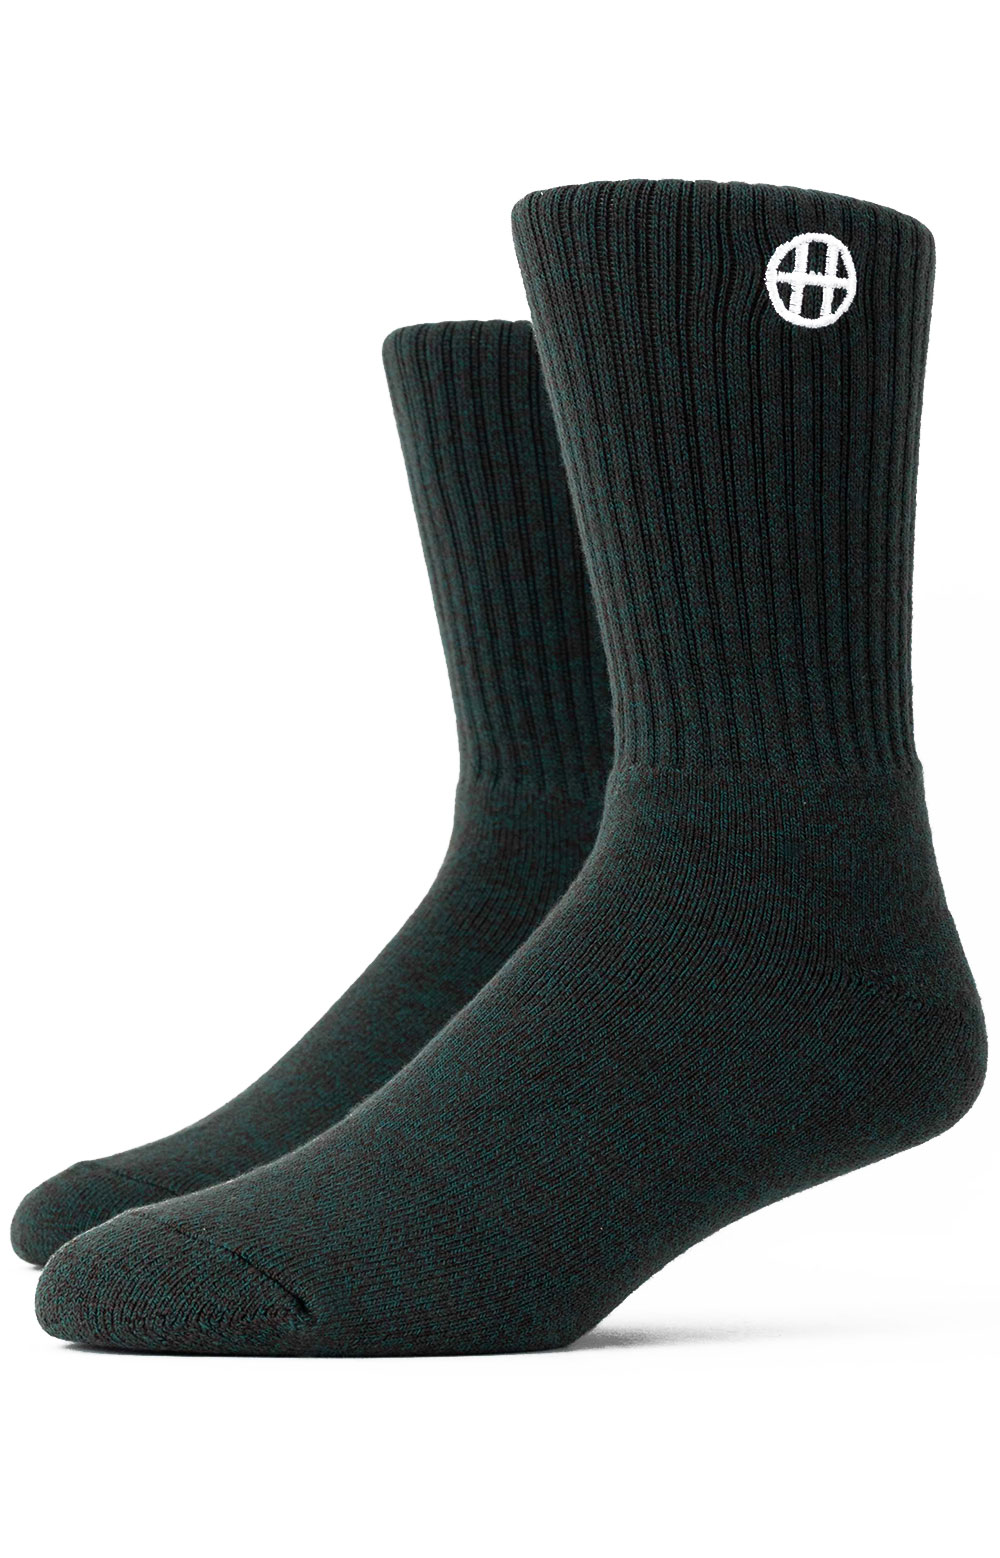 Heather Circle H Crew Socks - Jade